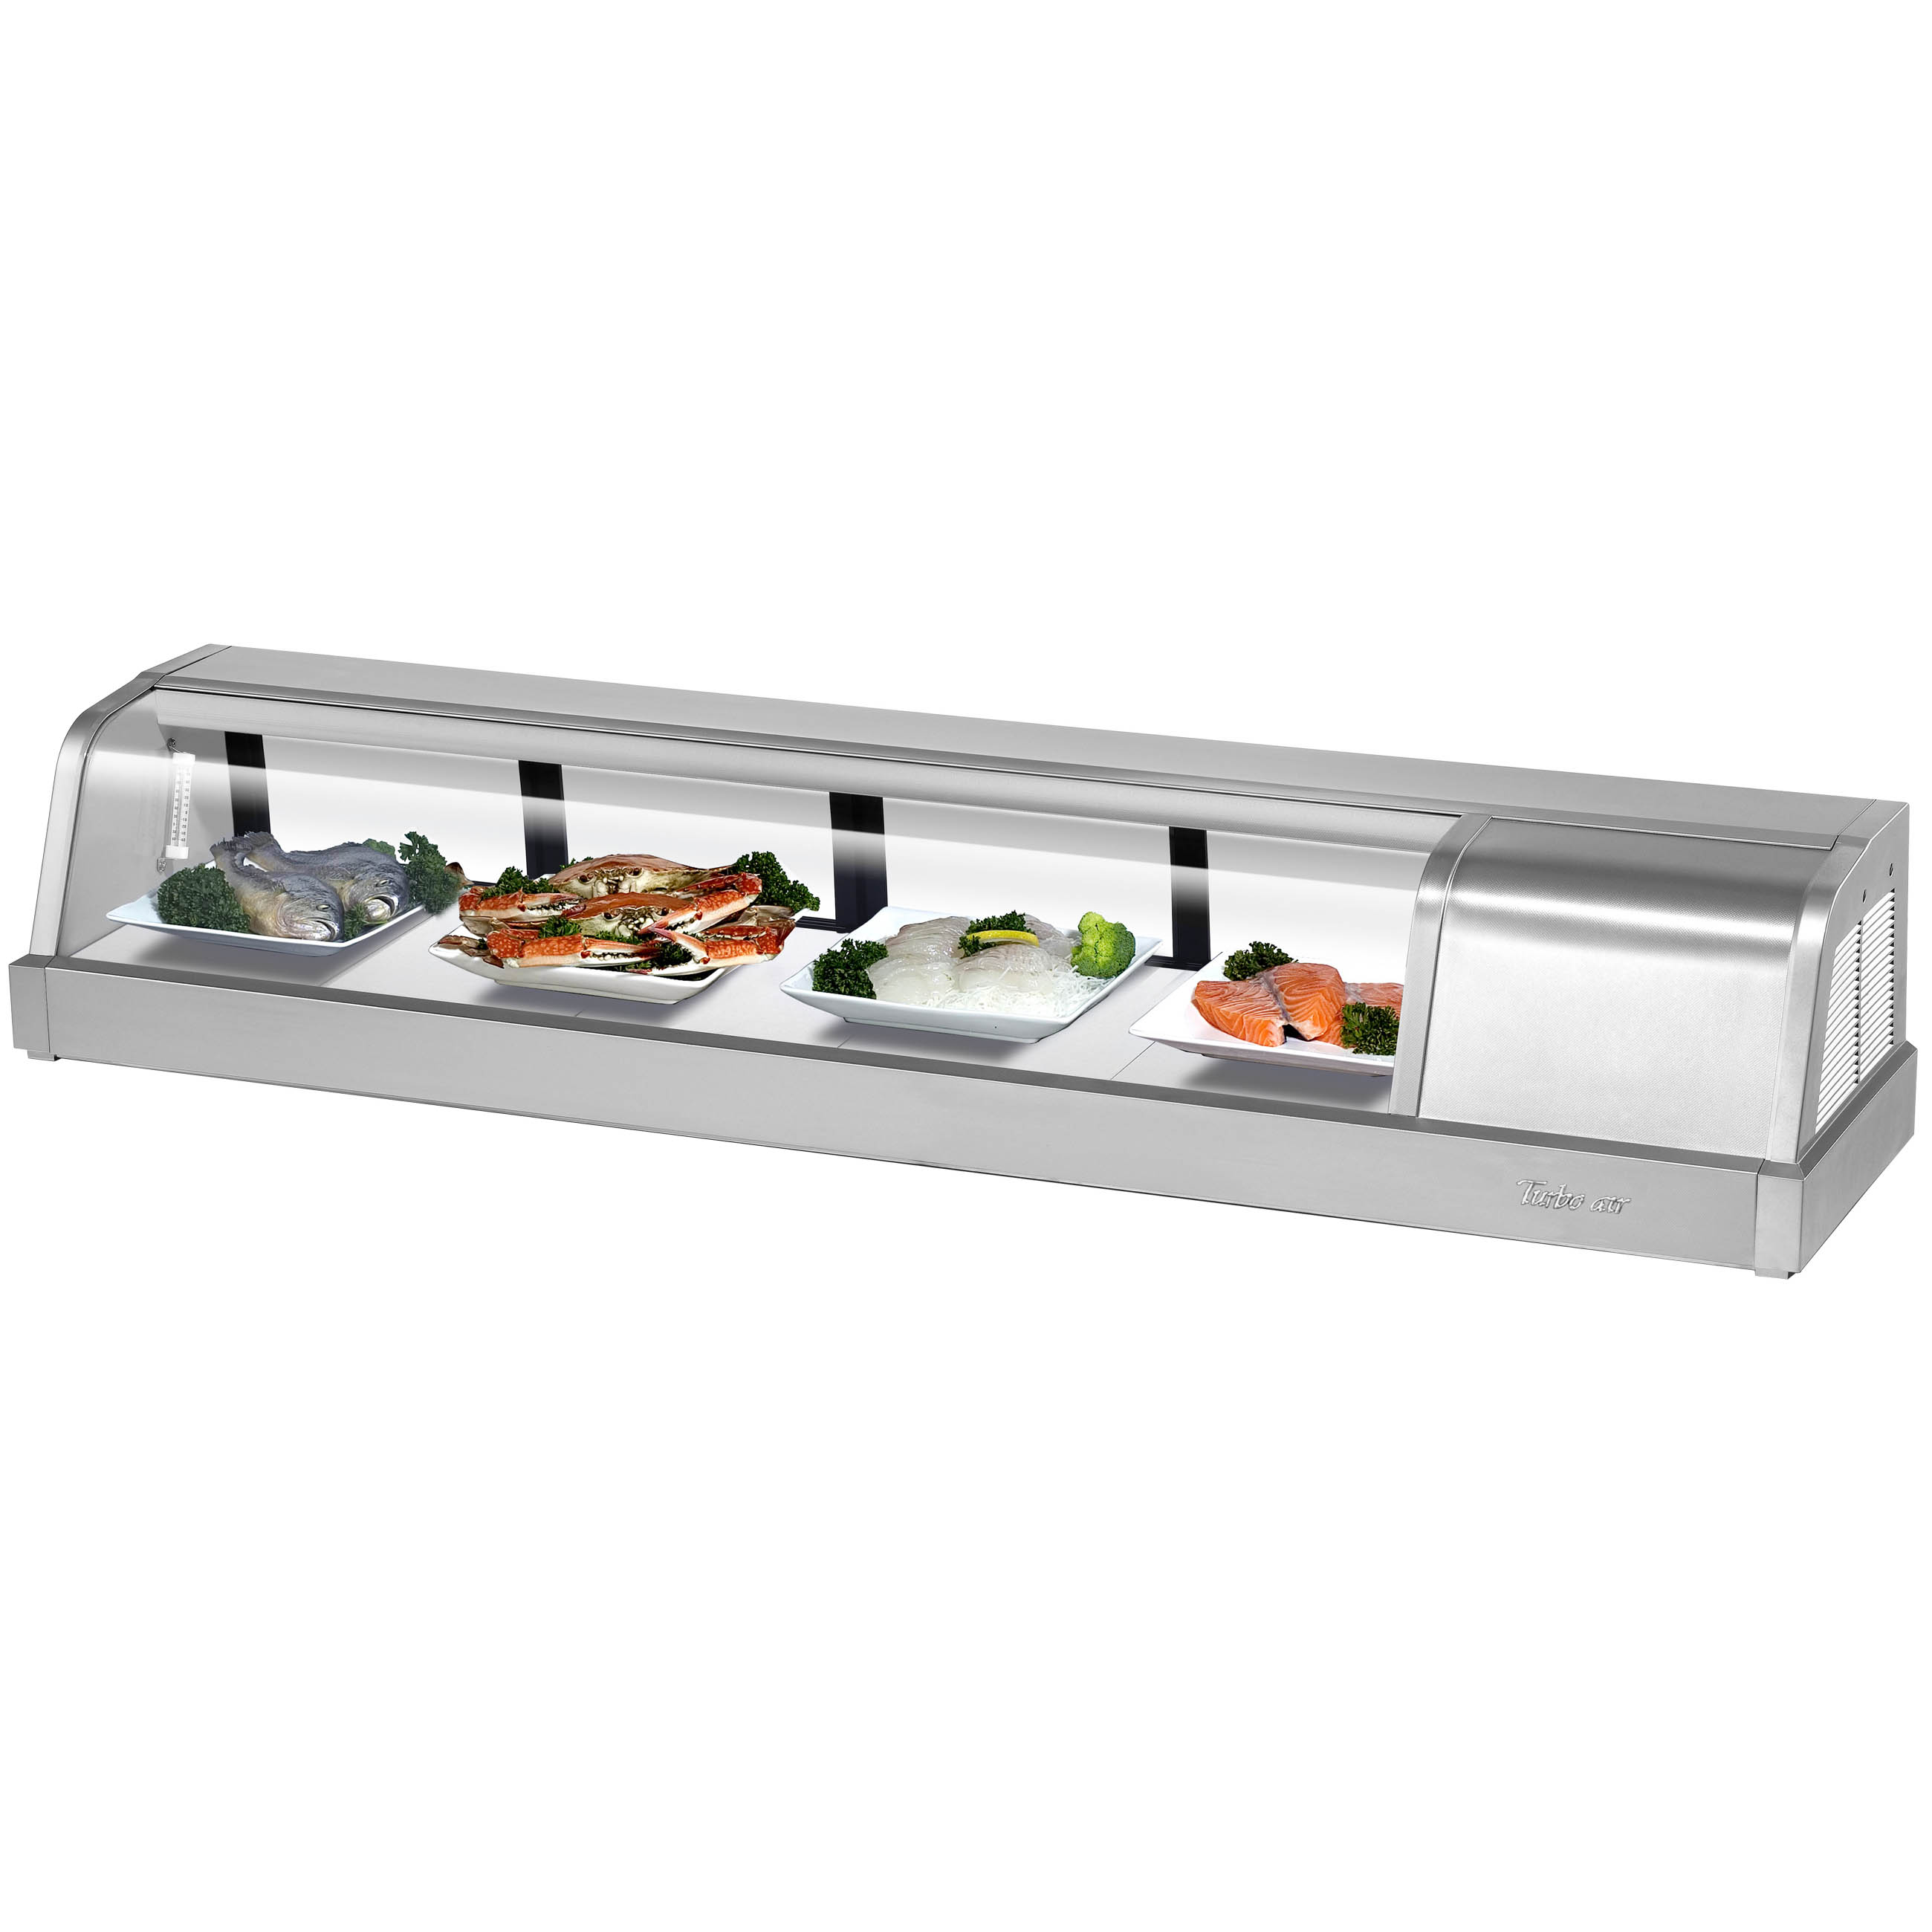 Turbo Air SAK-60R-N display case, refrigerated sushi